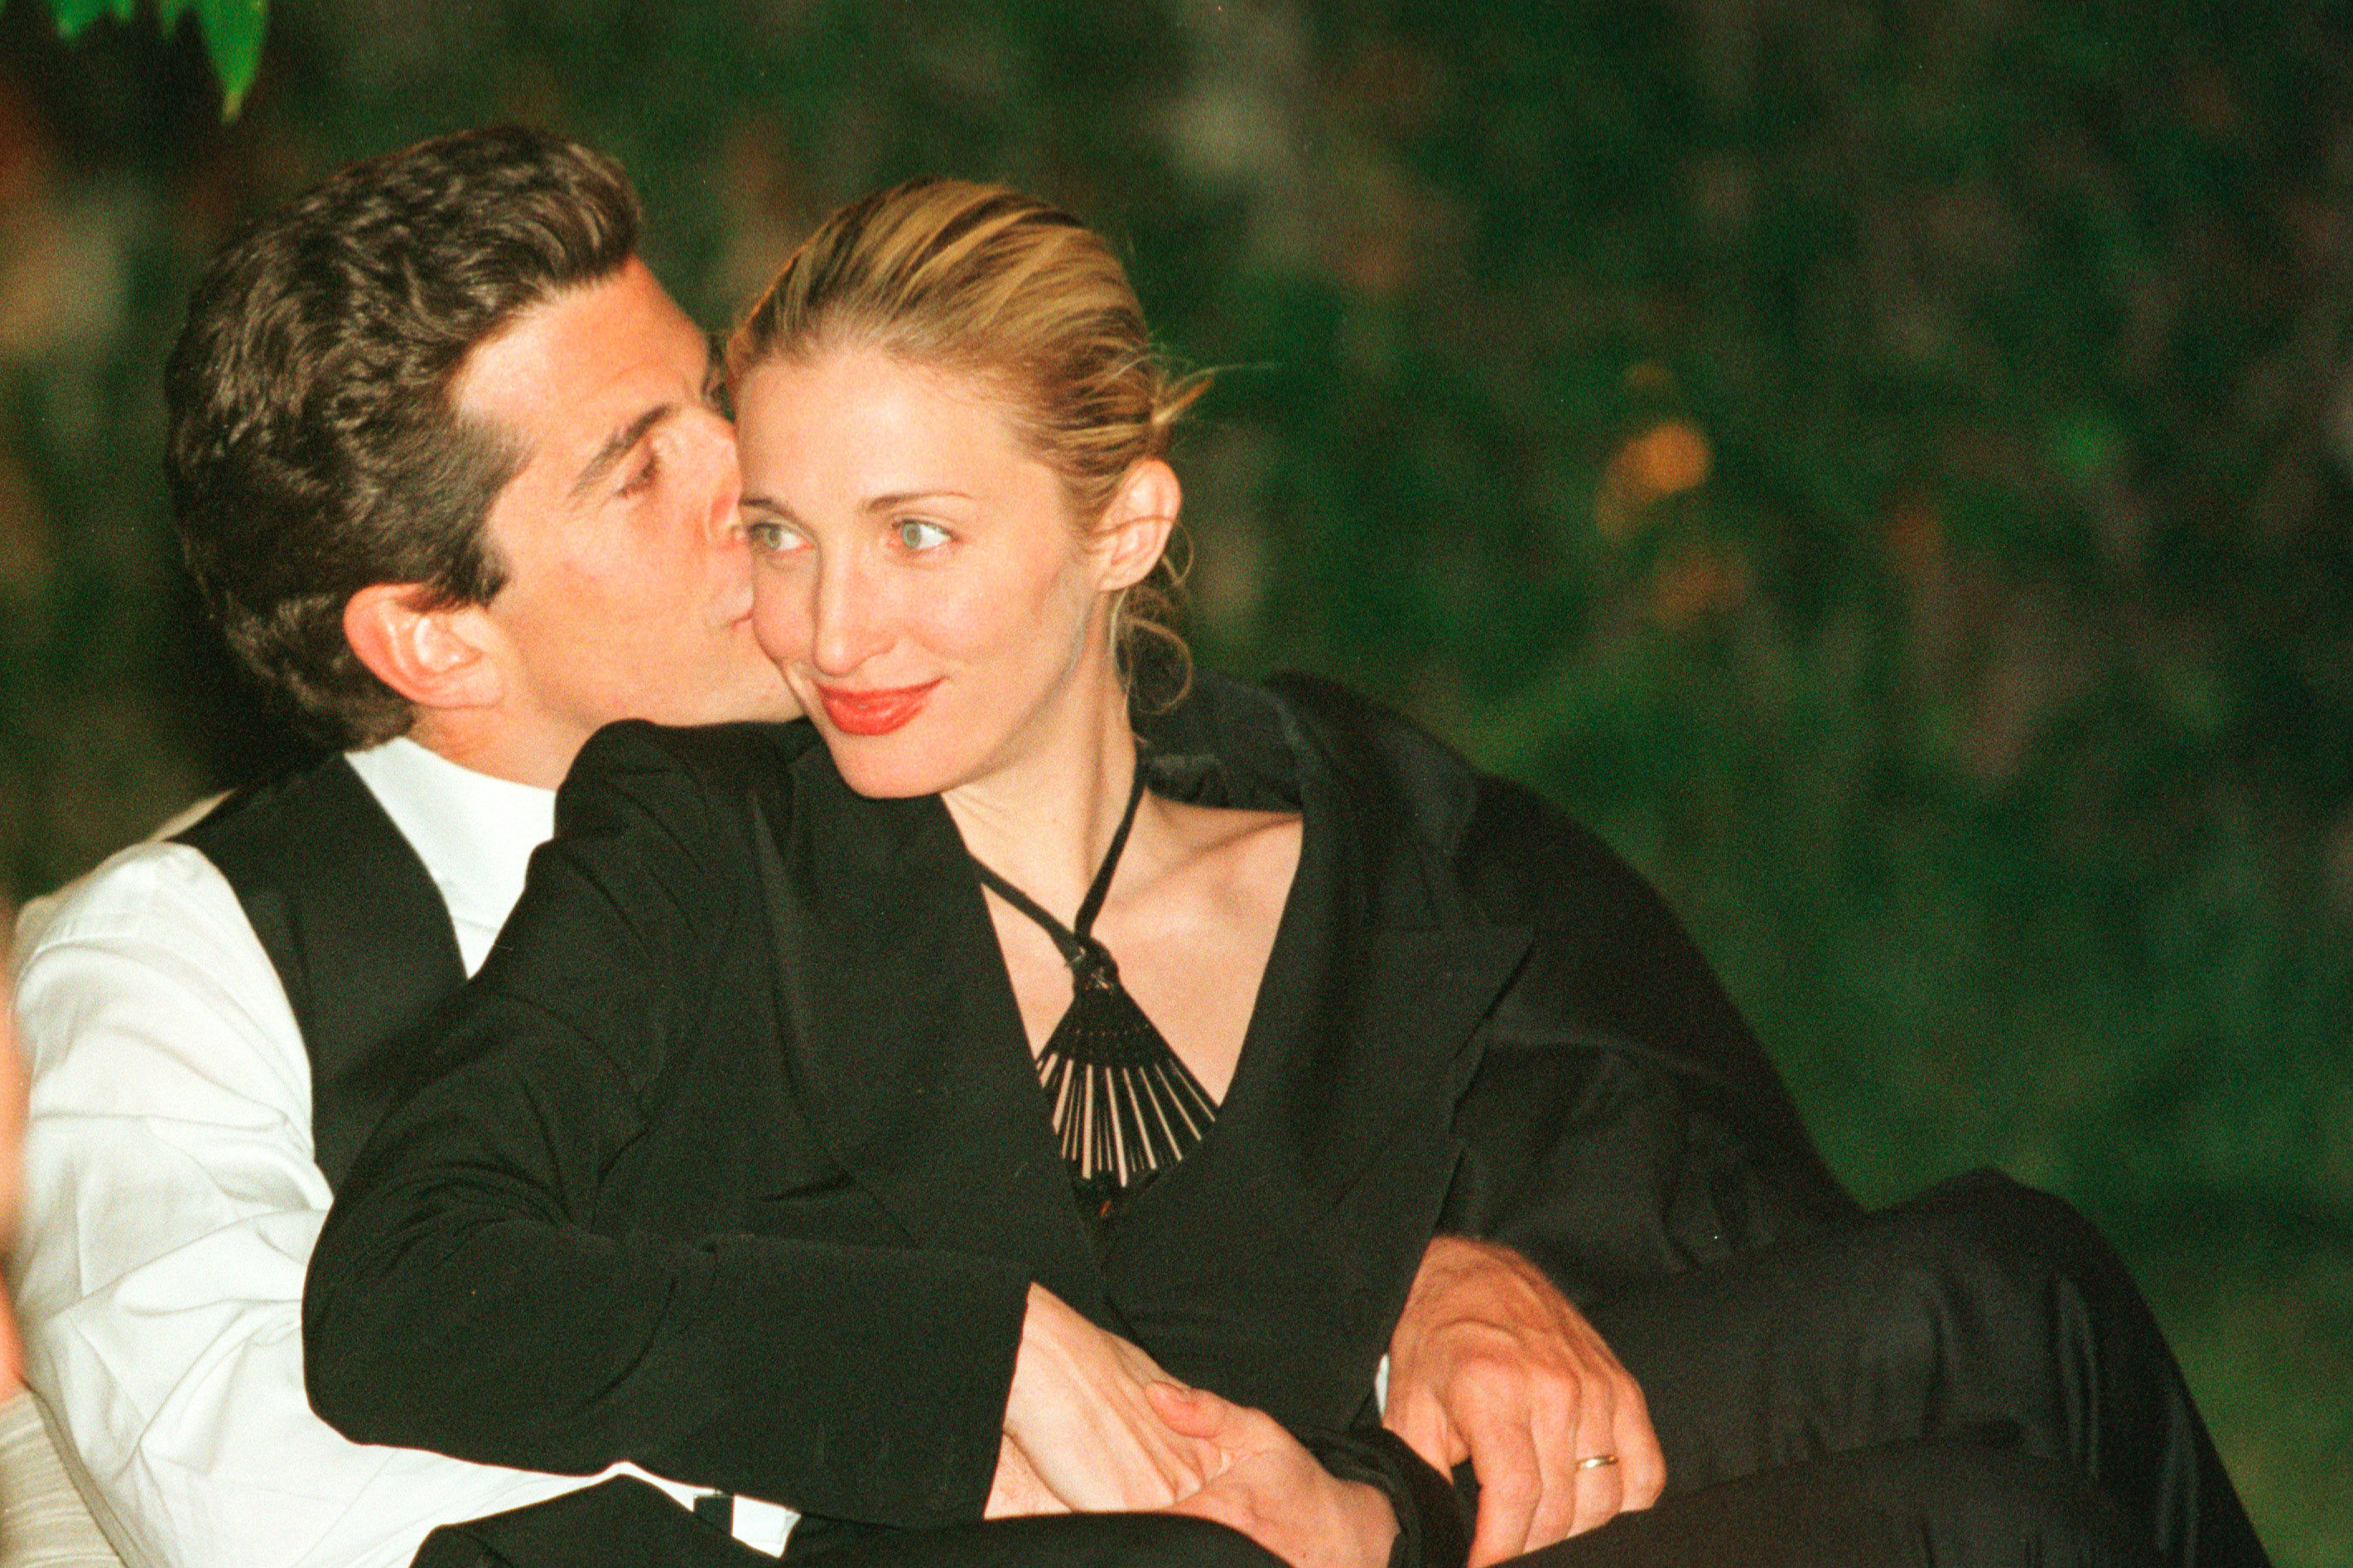 Watch Never-Before-Seen Footage of JFK Jr. and Carolyn Bessette's Secret Georgia Wedding